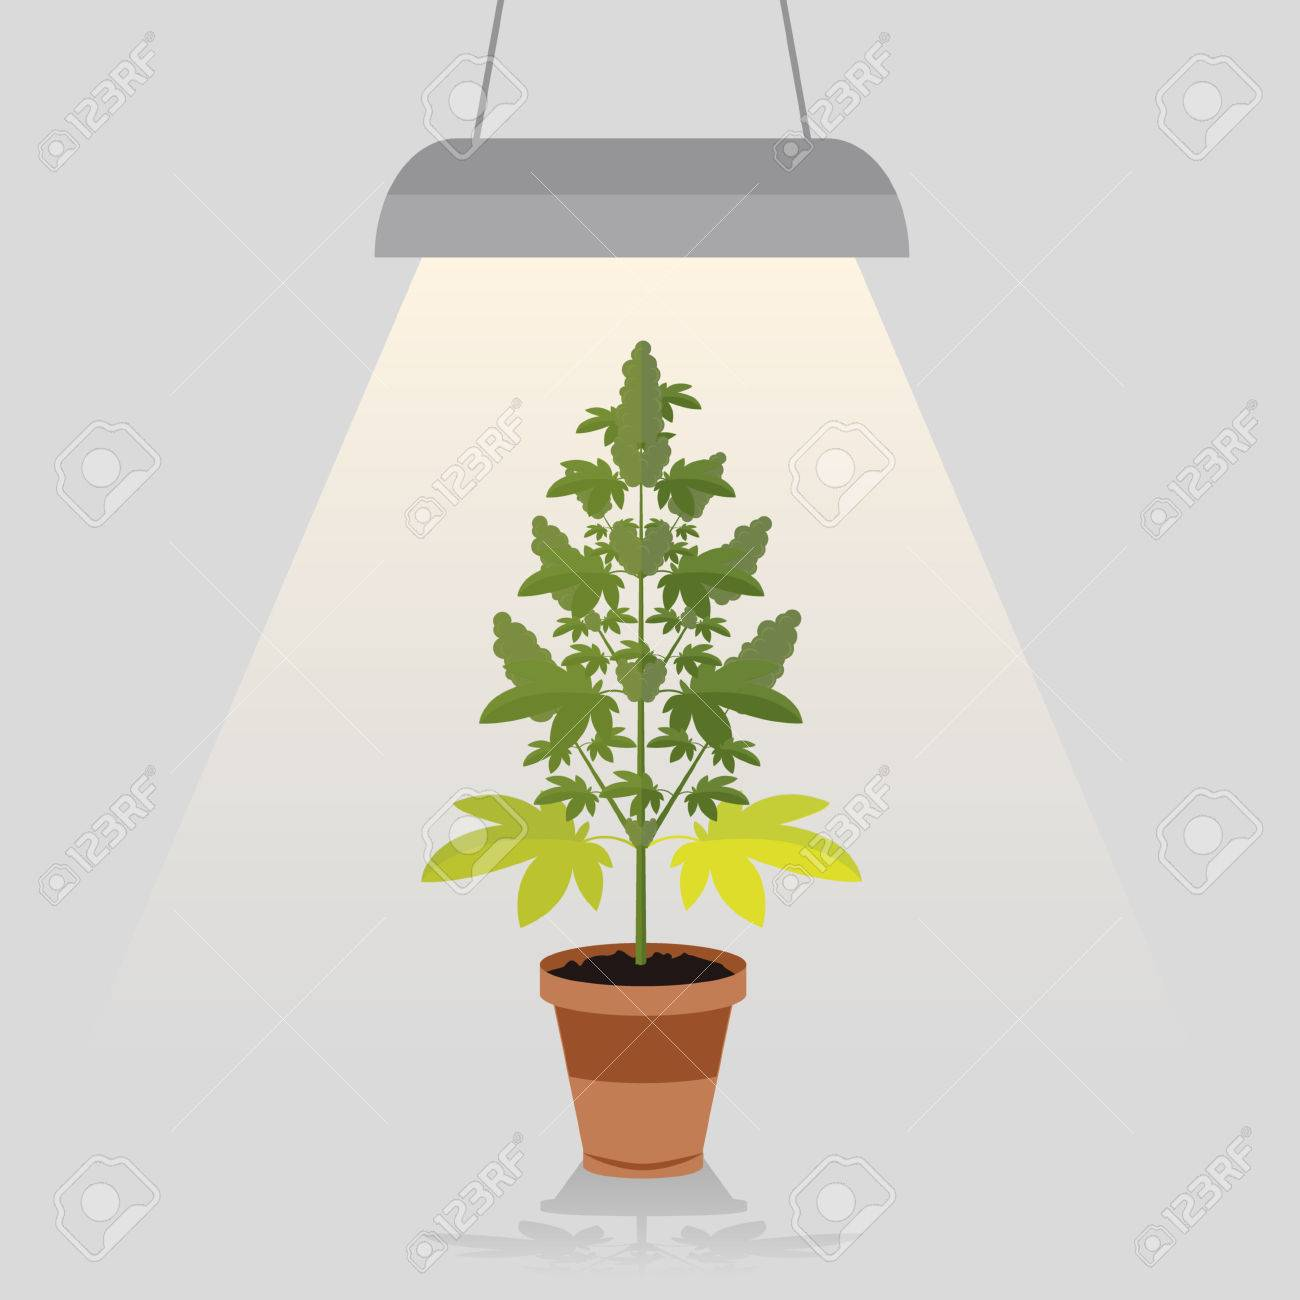 Lamp Plant Medical Cannabis Plant In Pot Legal Under The Built In Lamp Light